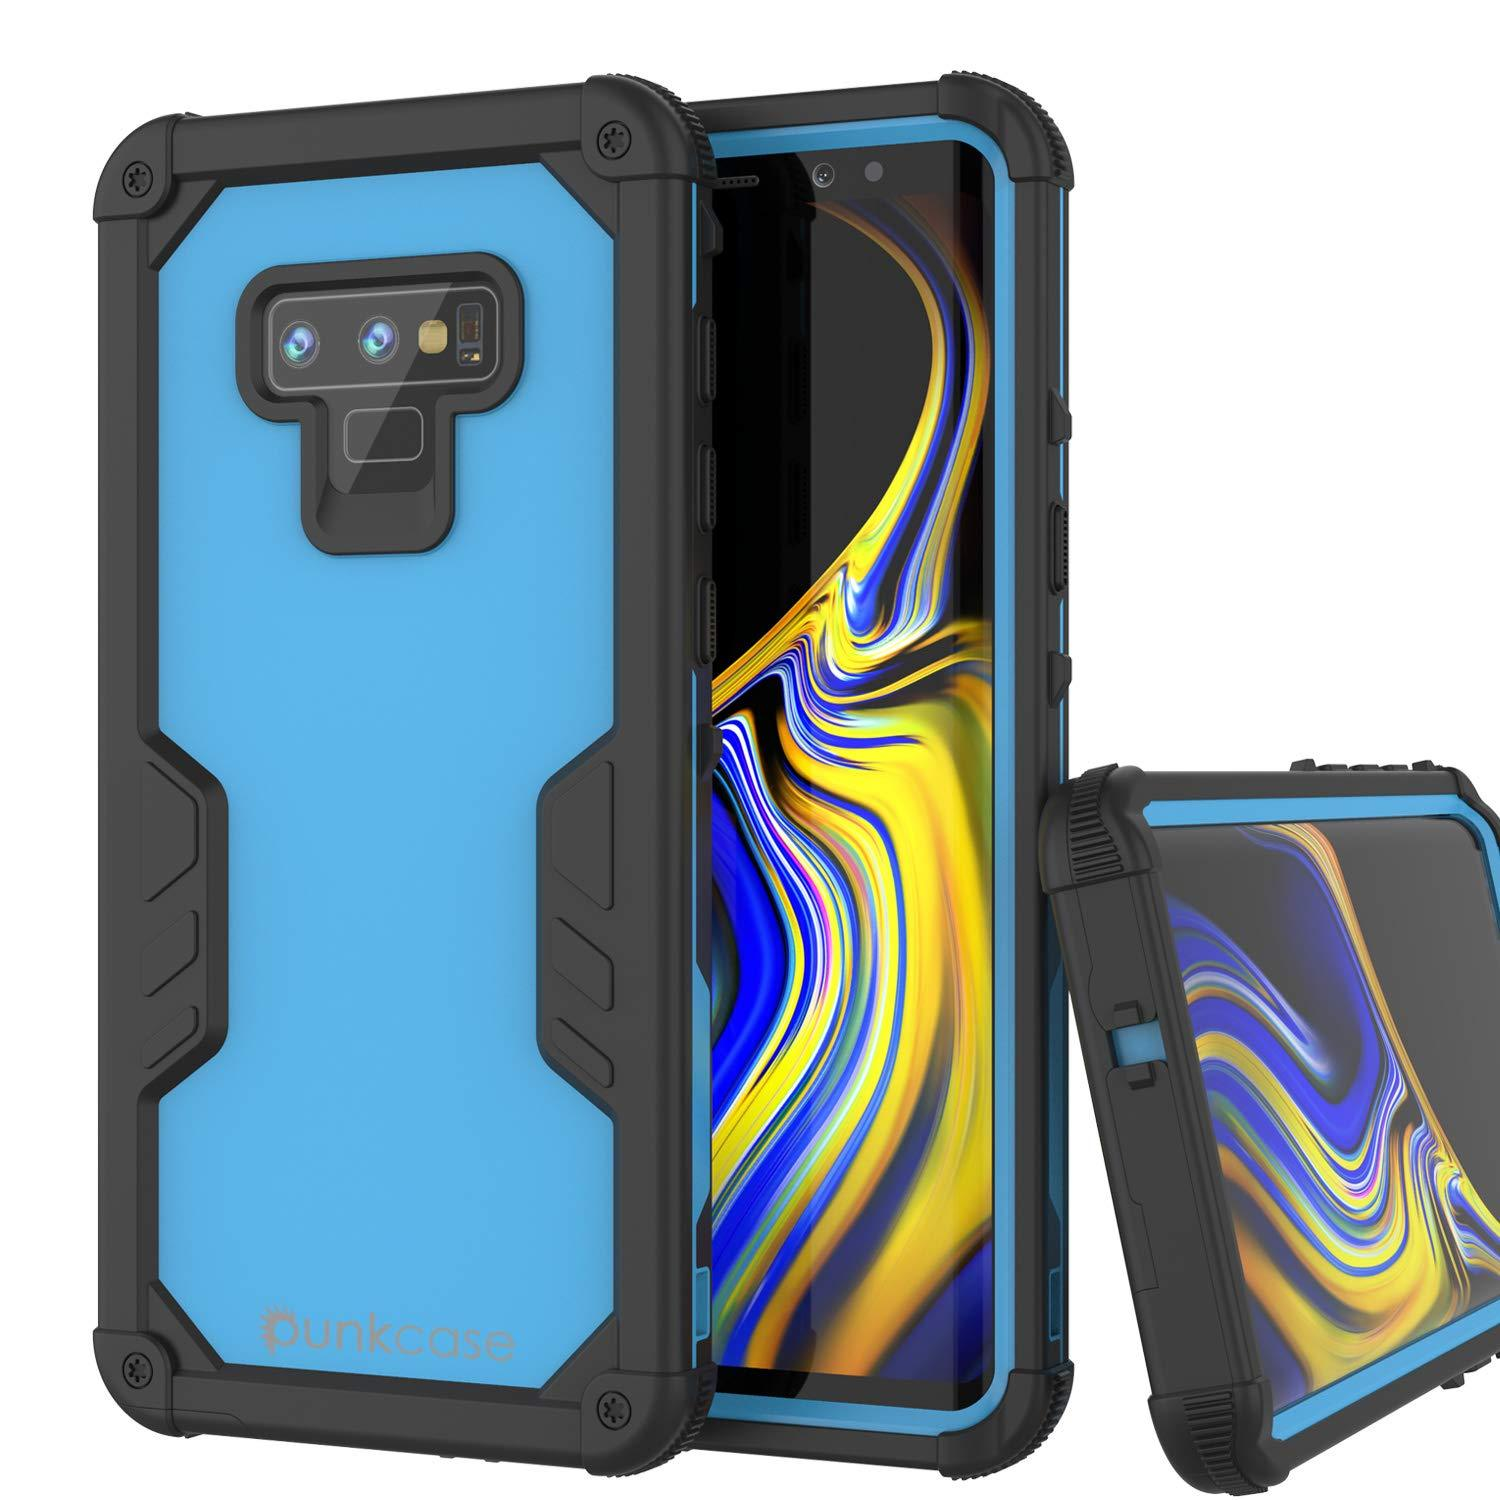 Punkcase Galaxy Note 9 Waterproof Case [Navy Seal Extreme Series] Armor Cover W/ Built In Screen Protector [Light Blue]